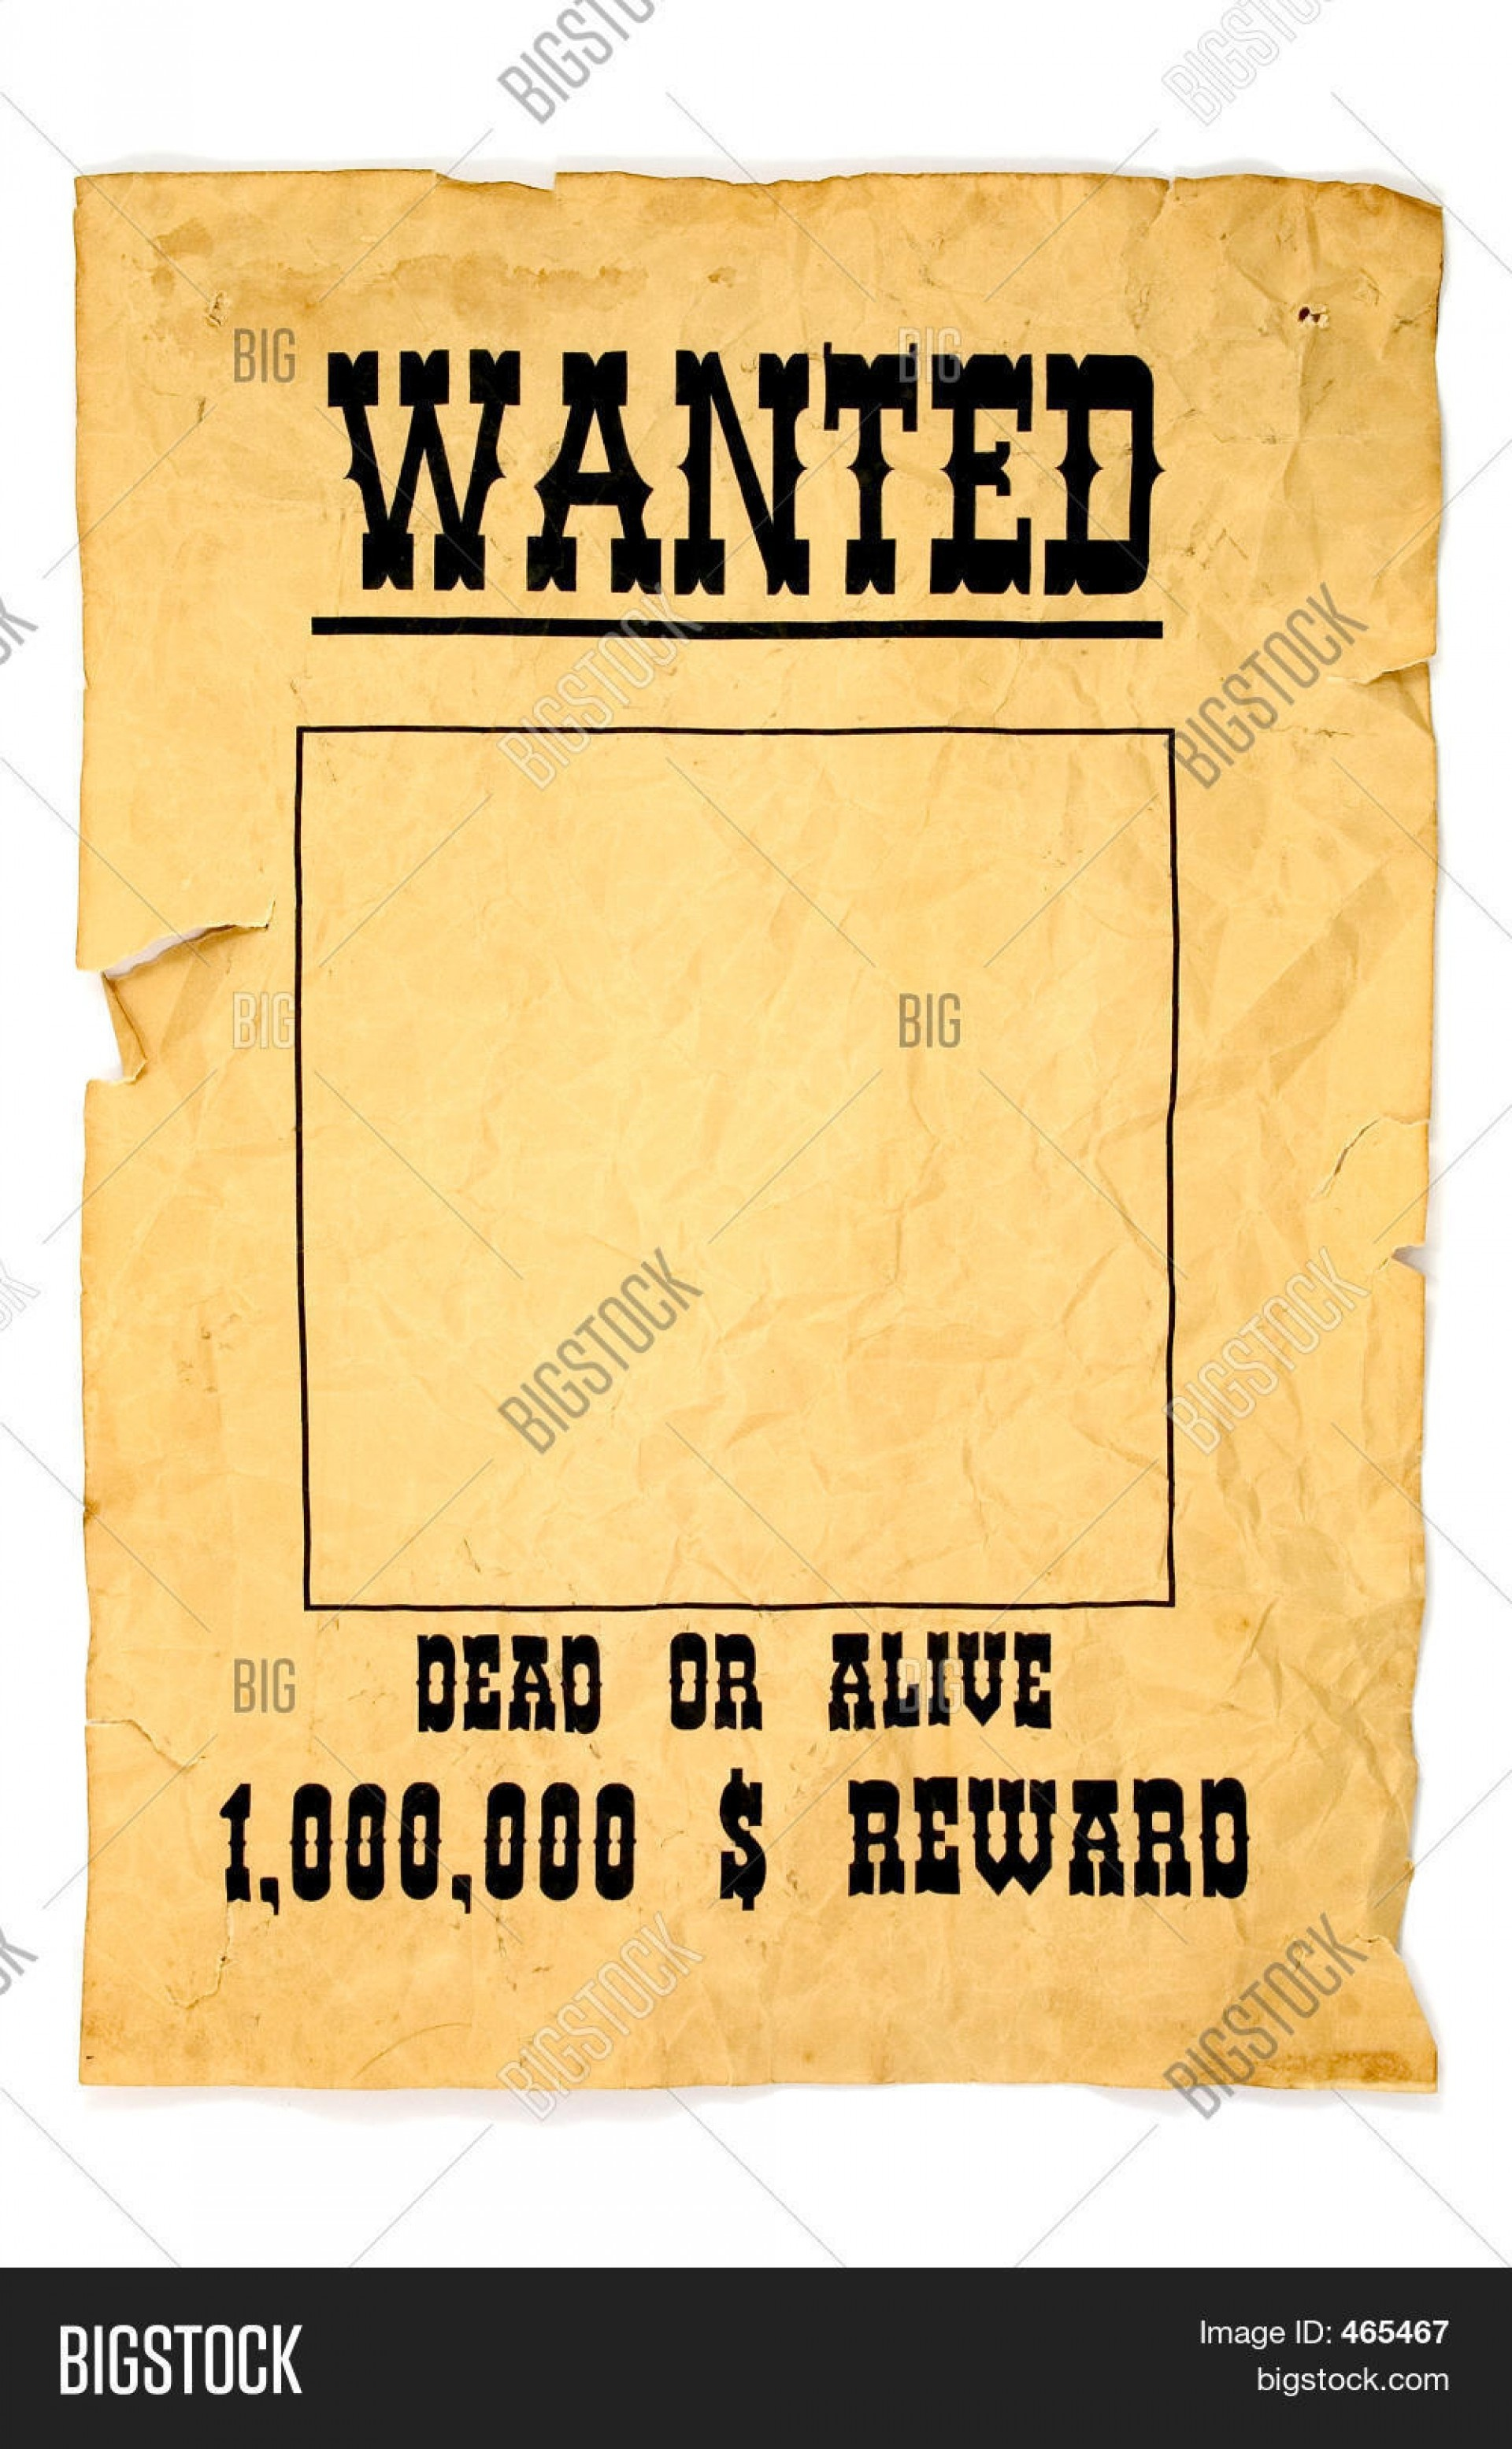 007 Free Wanted Poster Template Printable Wantedster For Word Kids - Wanted Poster Printable Free